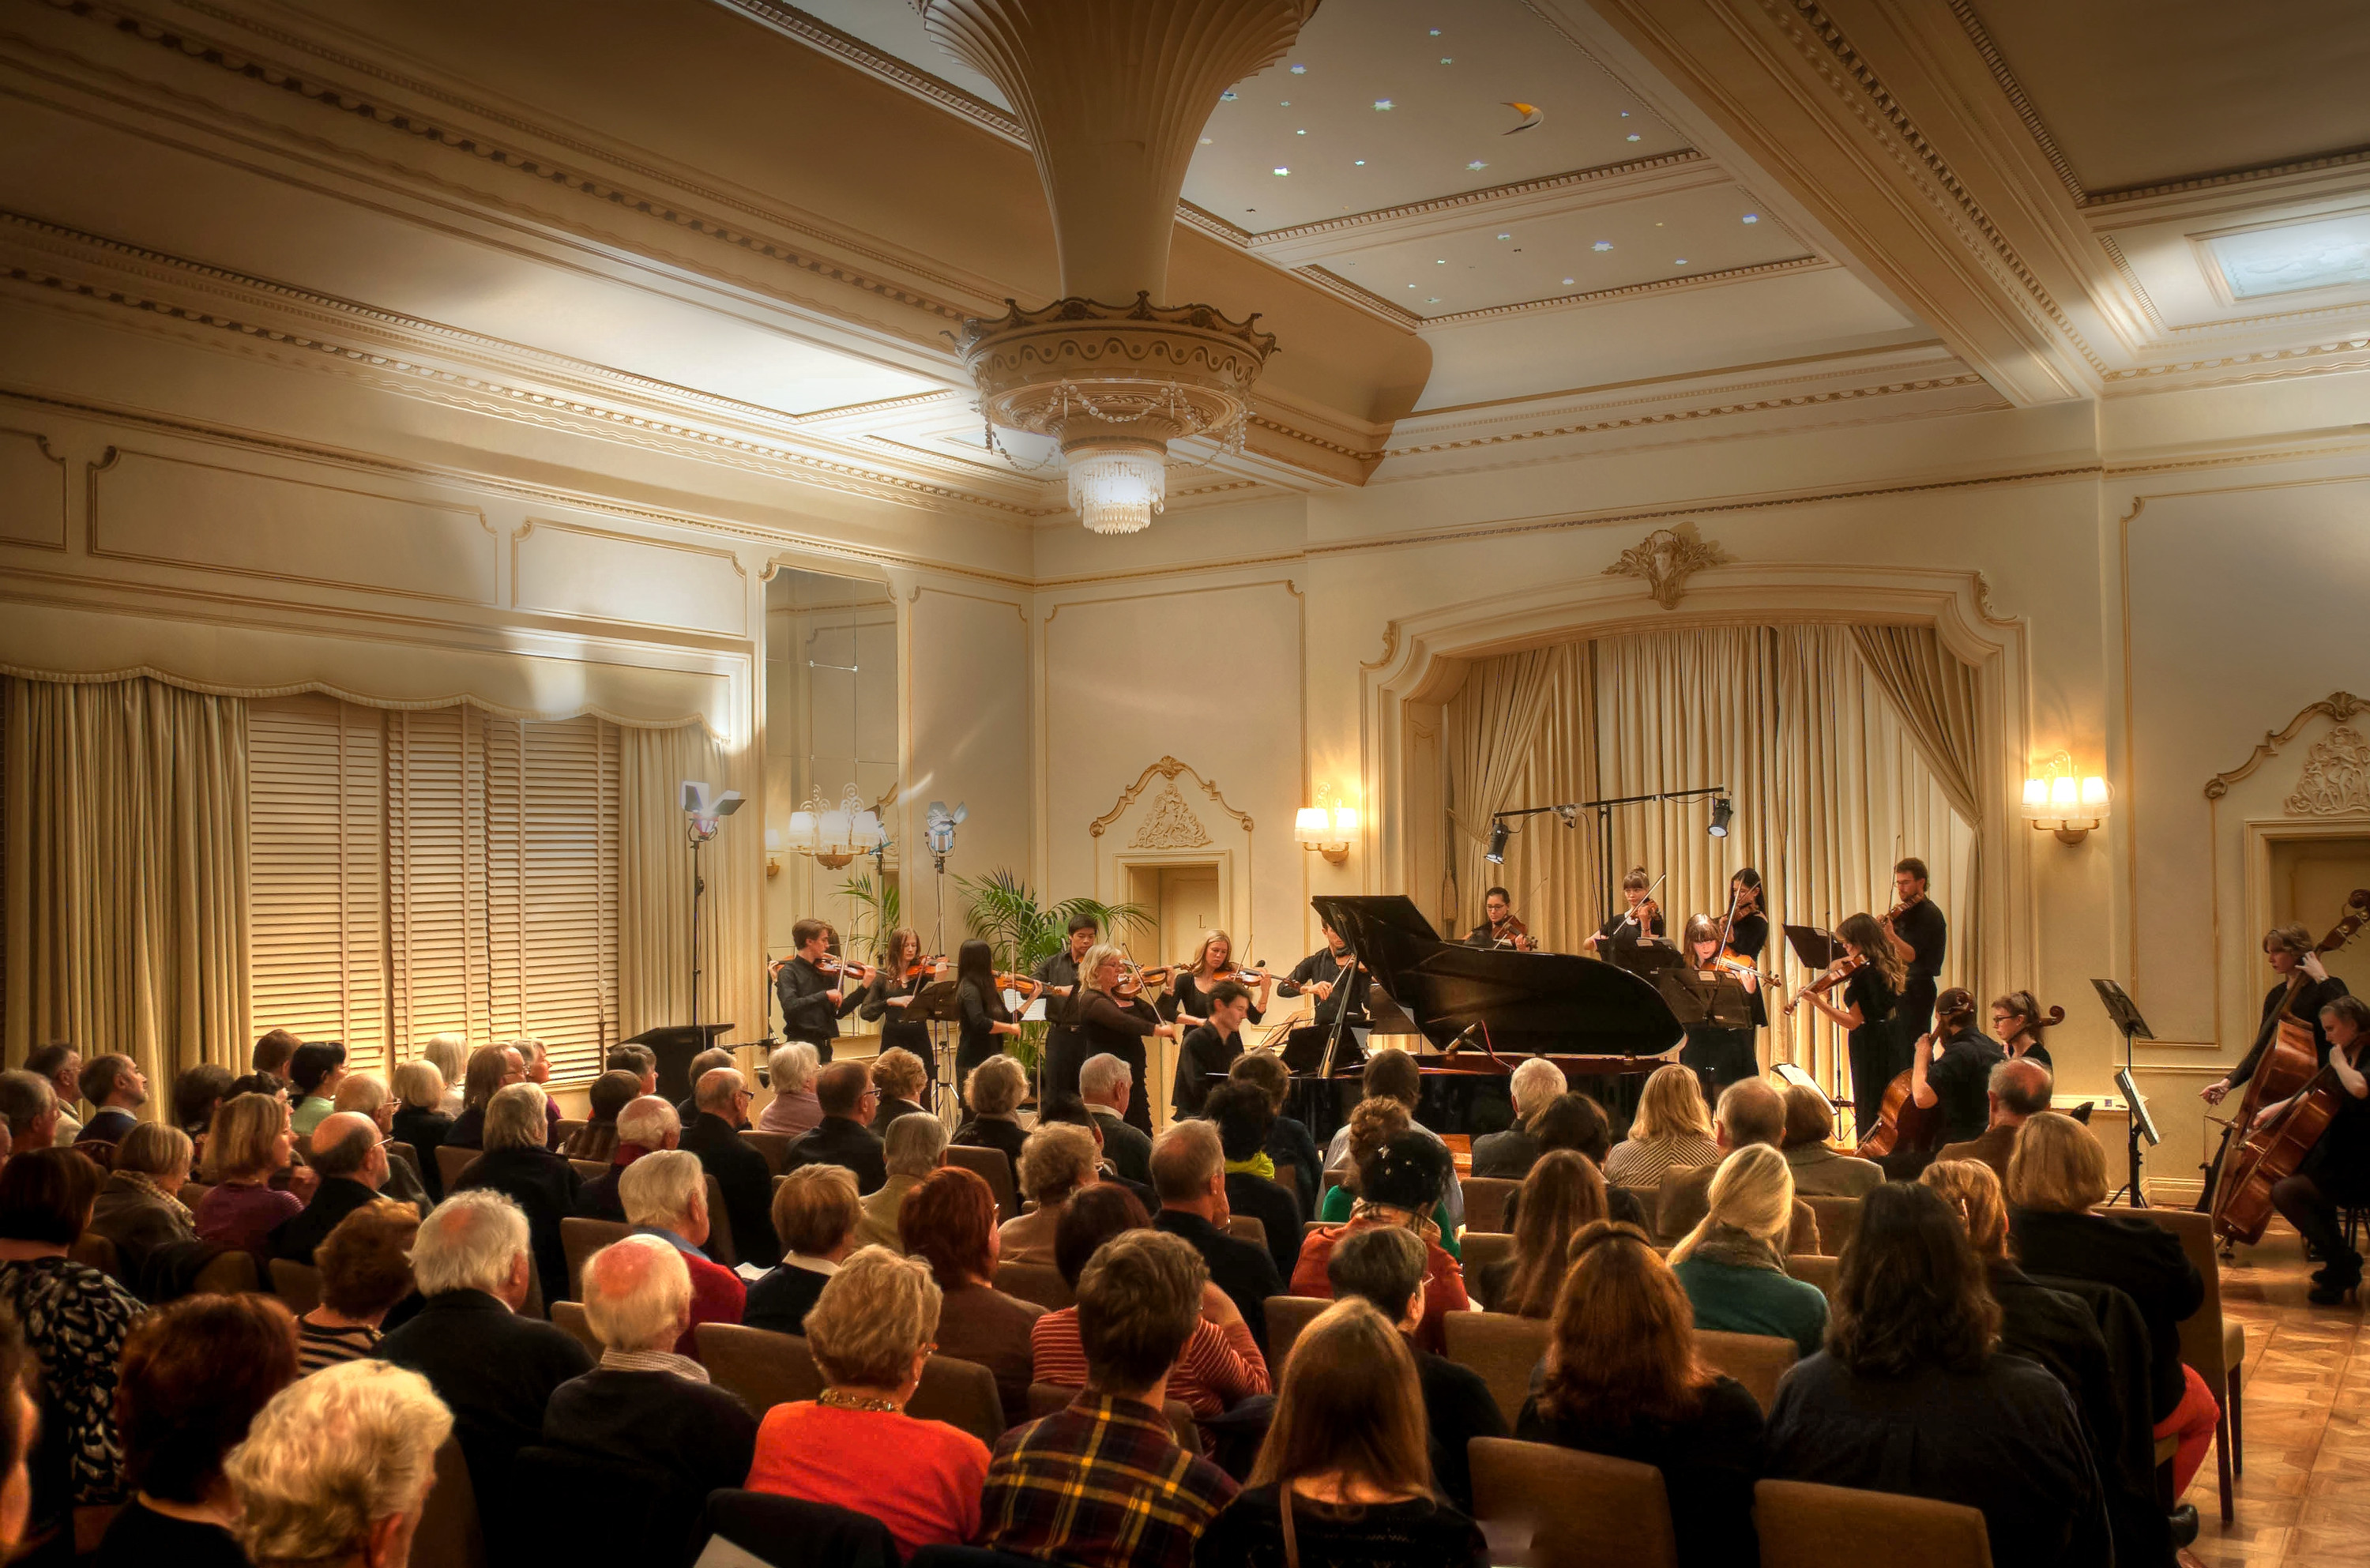 Full House – Beleura Twilight Chamber Music at Rippon Lea 2013 (Image: Toby Frost)